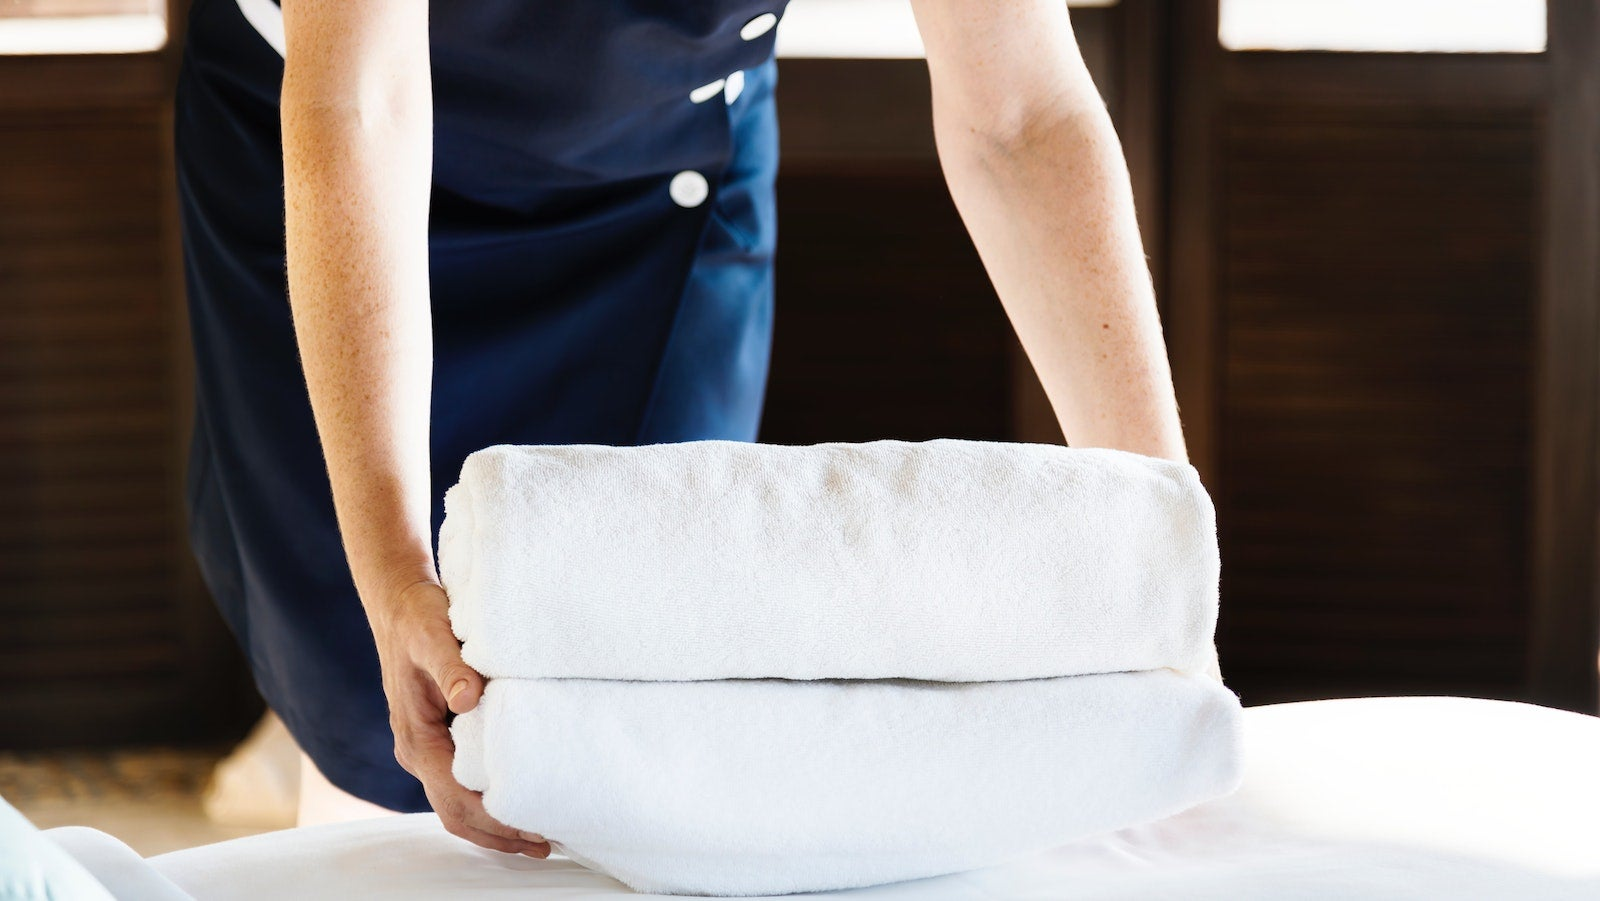 hotel-service hotels maid-service tipping tips